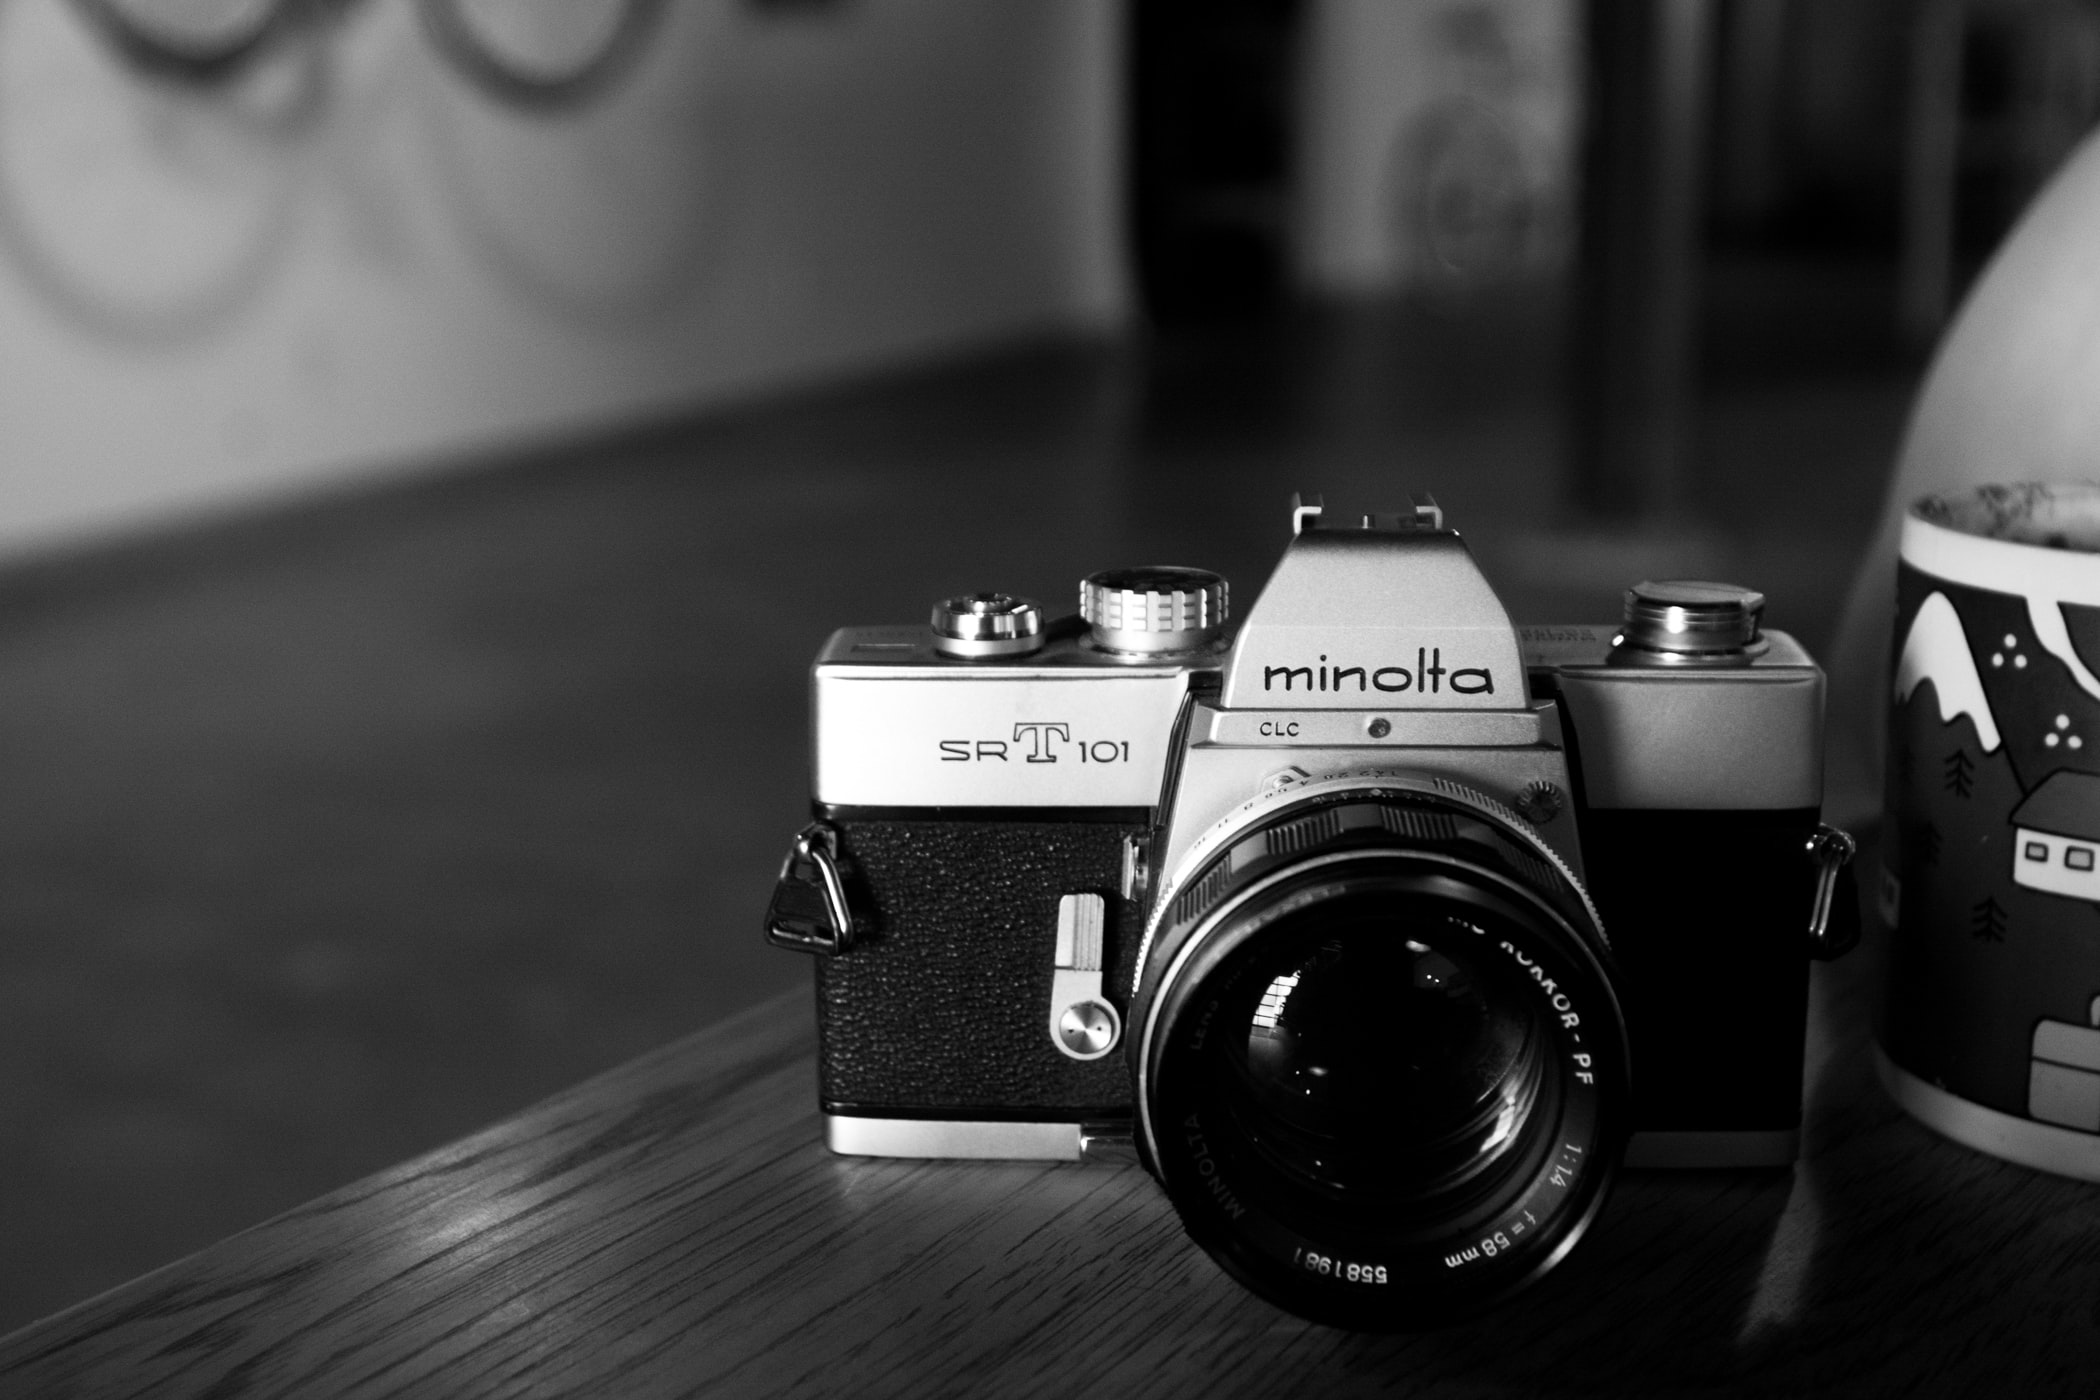 Minolta SLR camera on table